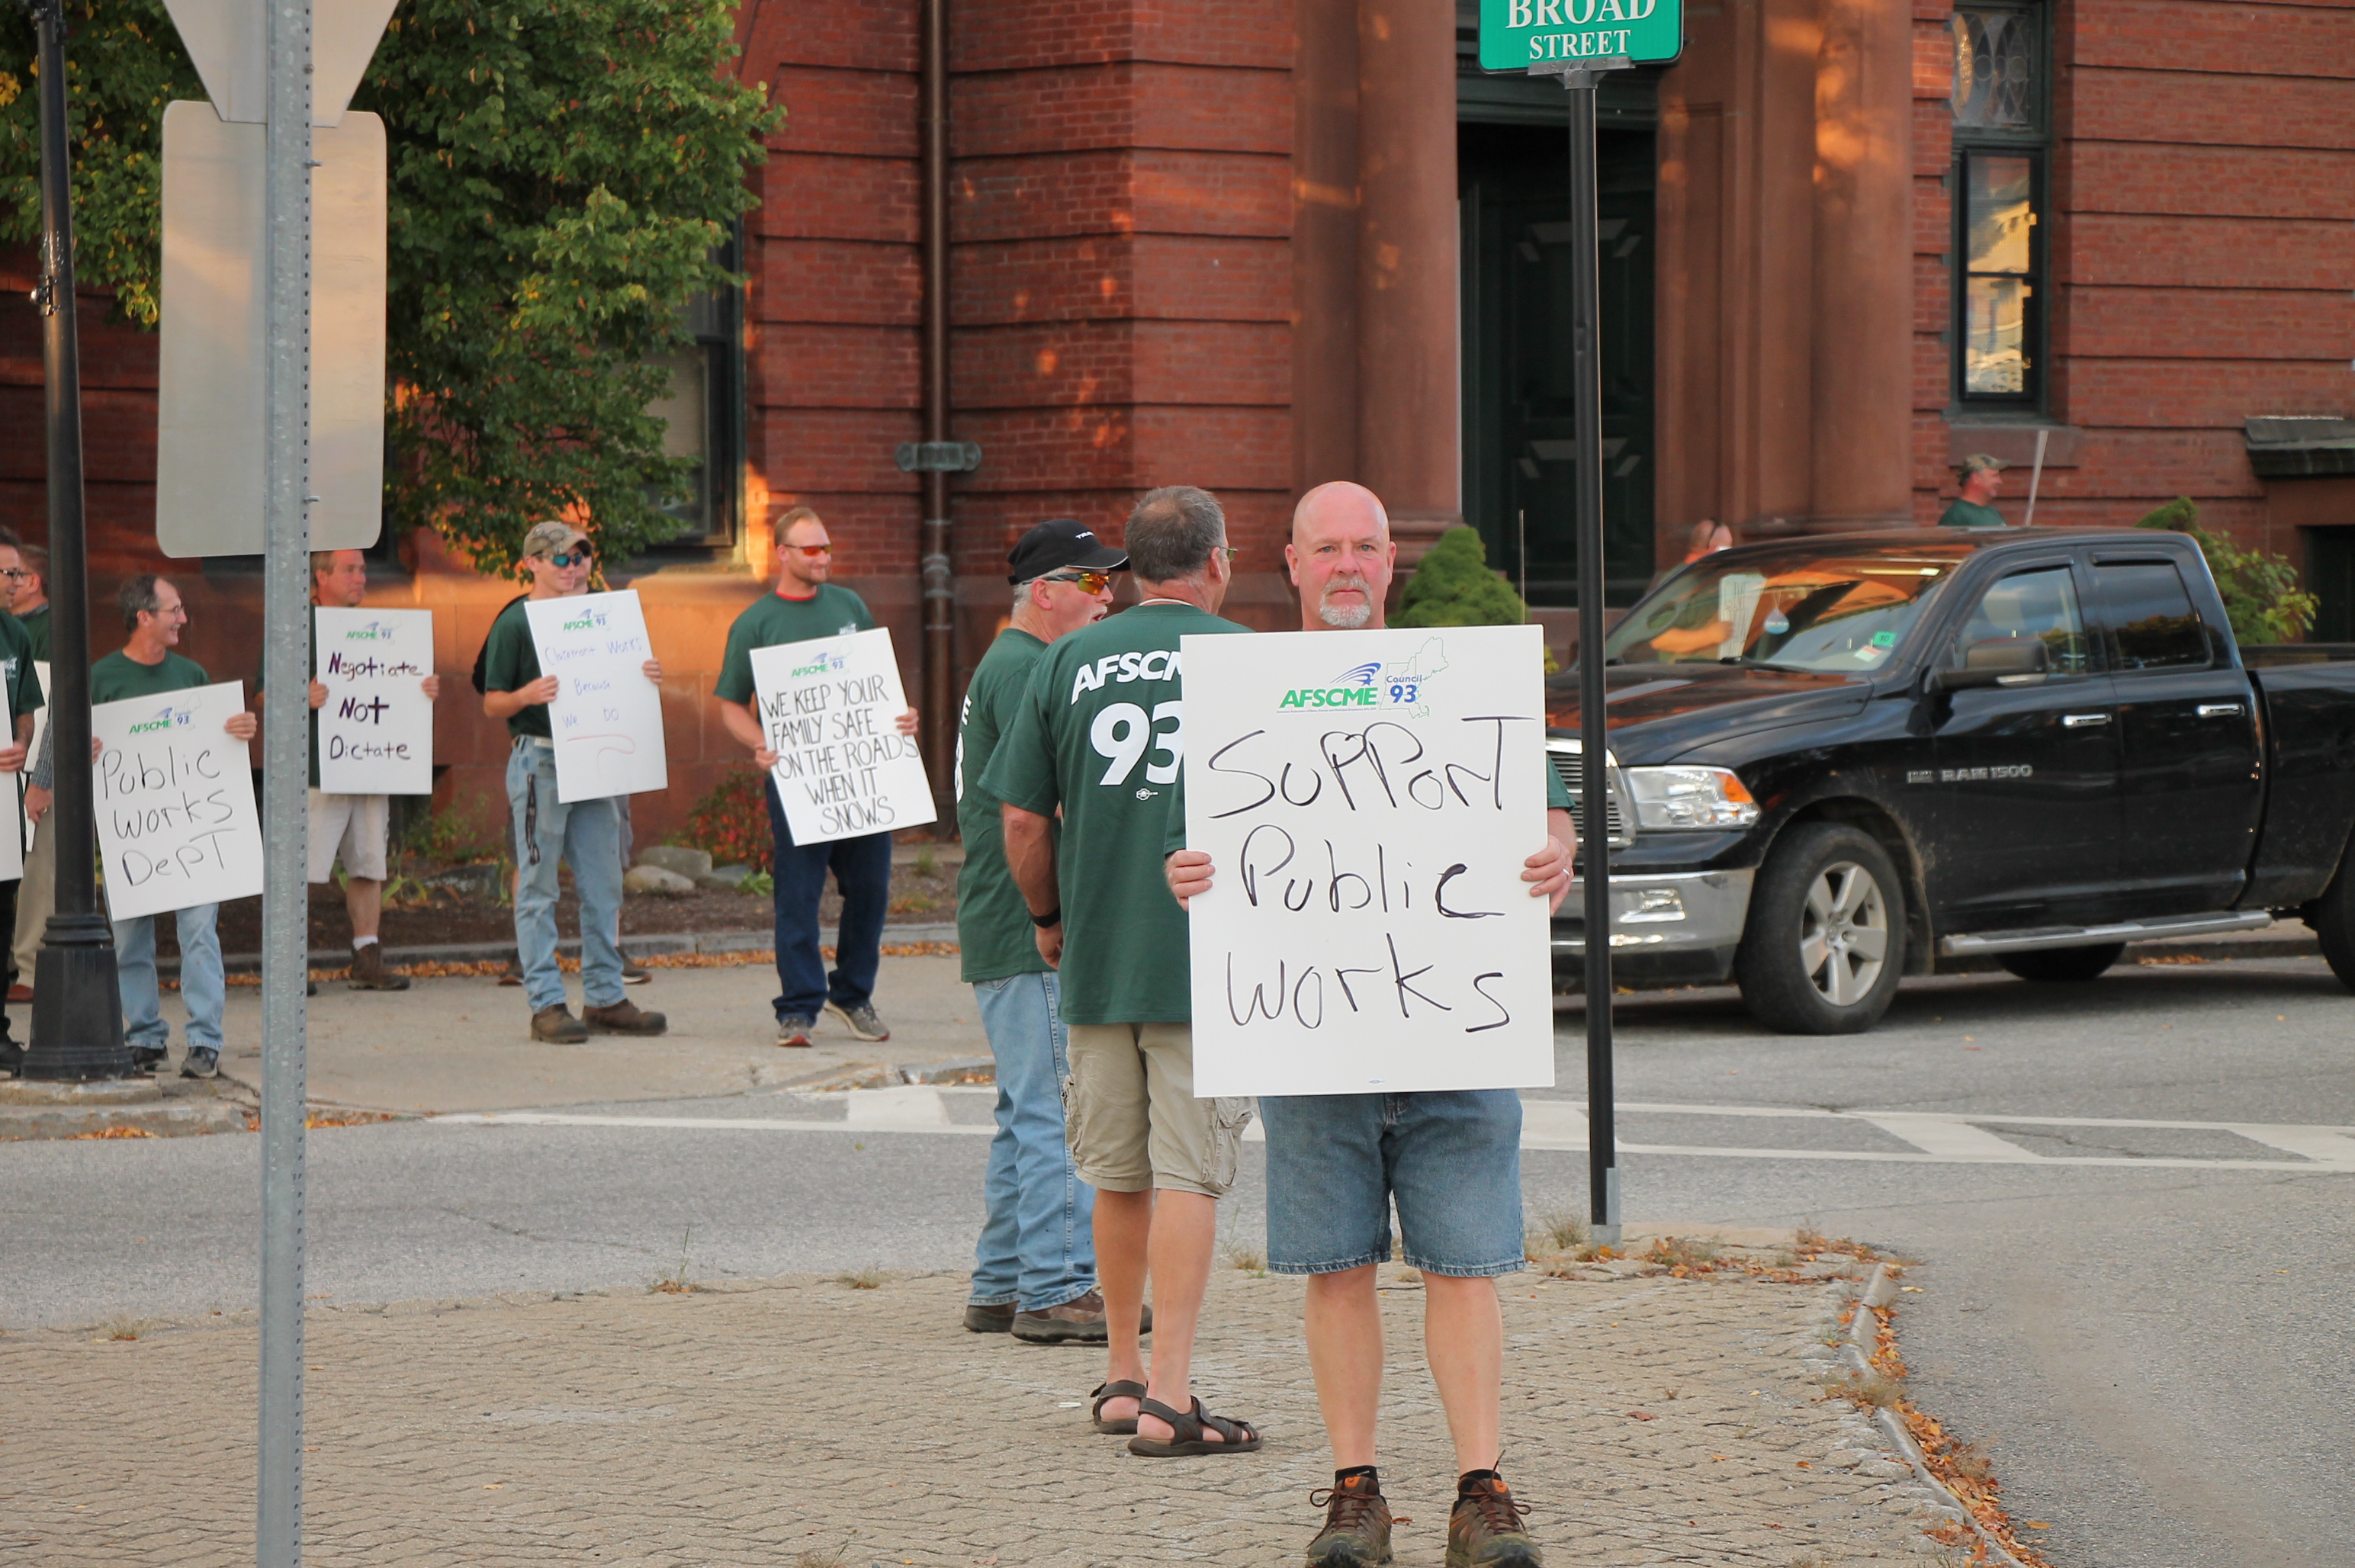 Protesting Lack of Contract